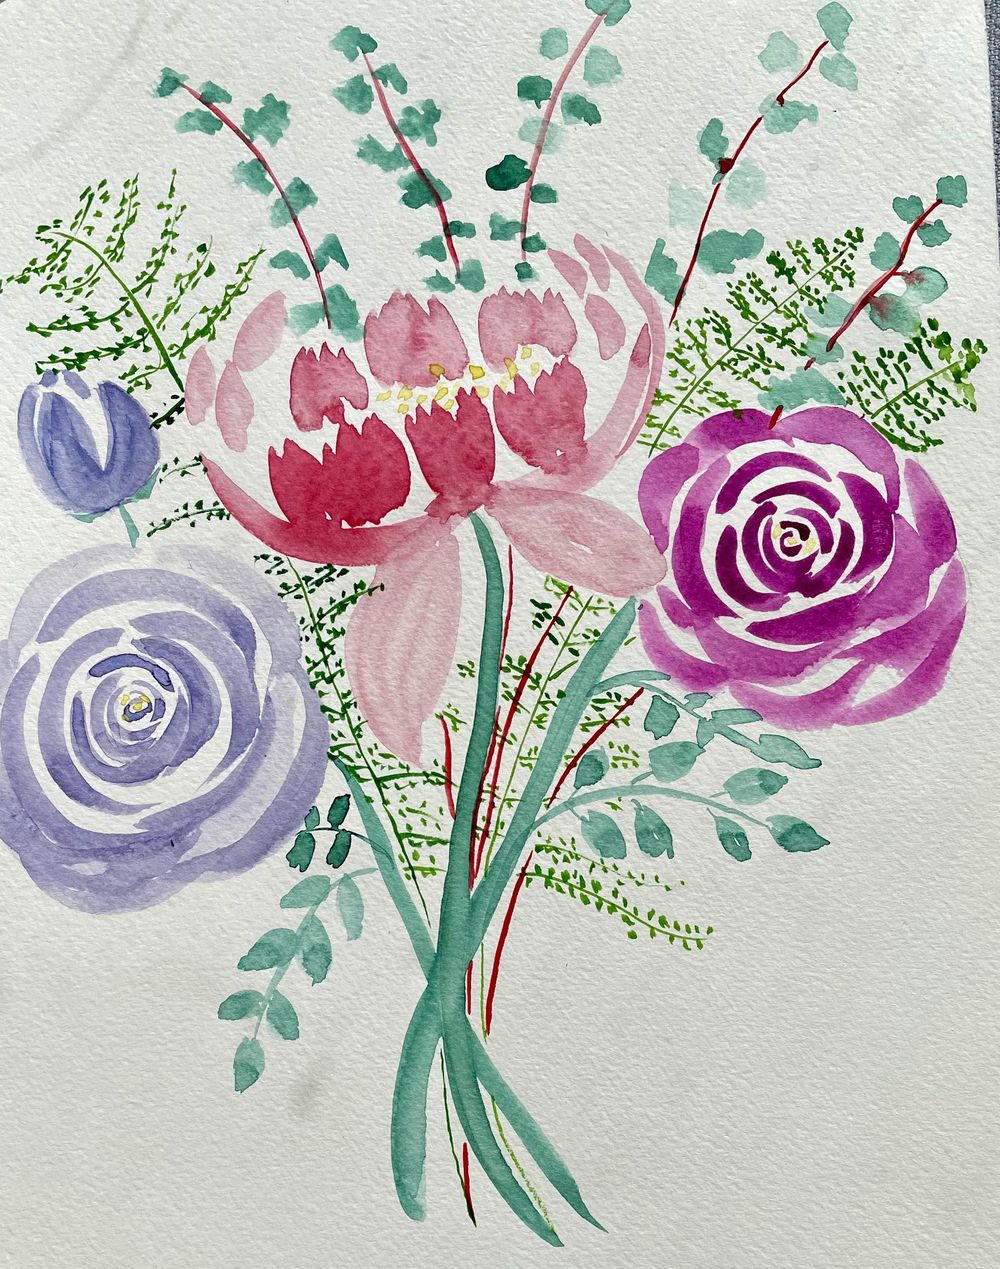 Enjoyable loose florals - image 2 - student project